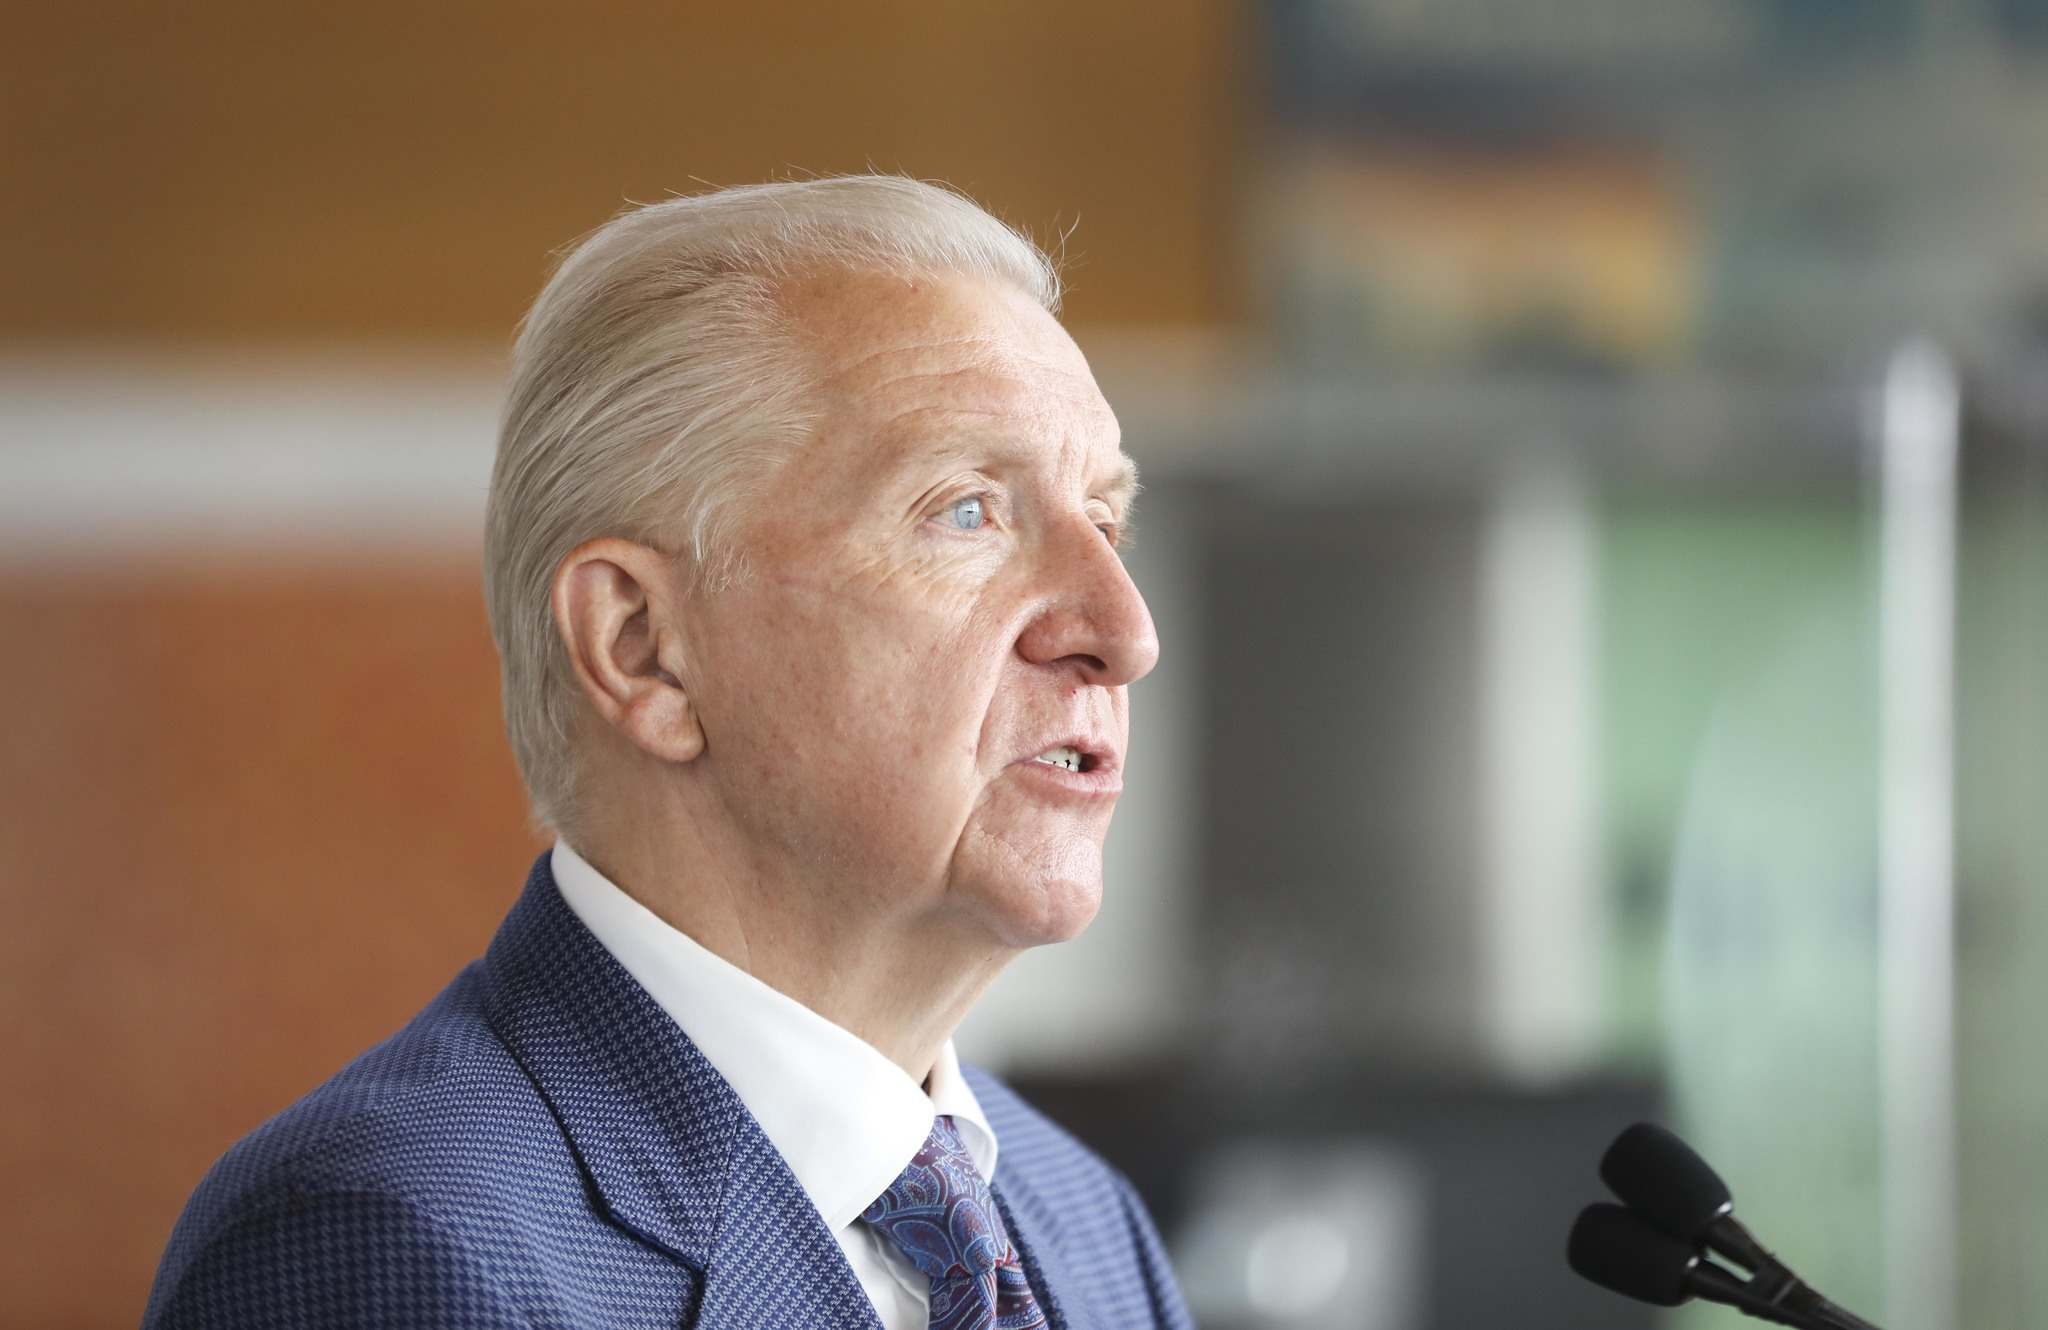 The outlook at the airport is positive for the first time in months, says Barry Rempel, president and CEO of the Winnipeg Airports Authority. (Ruth Bonneville / Winnipeg Free Press)